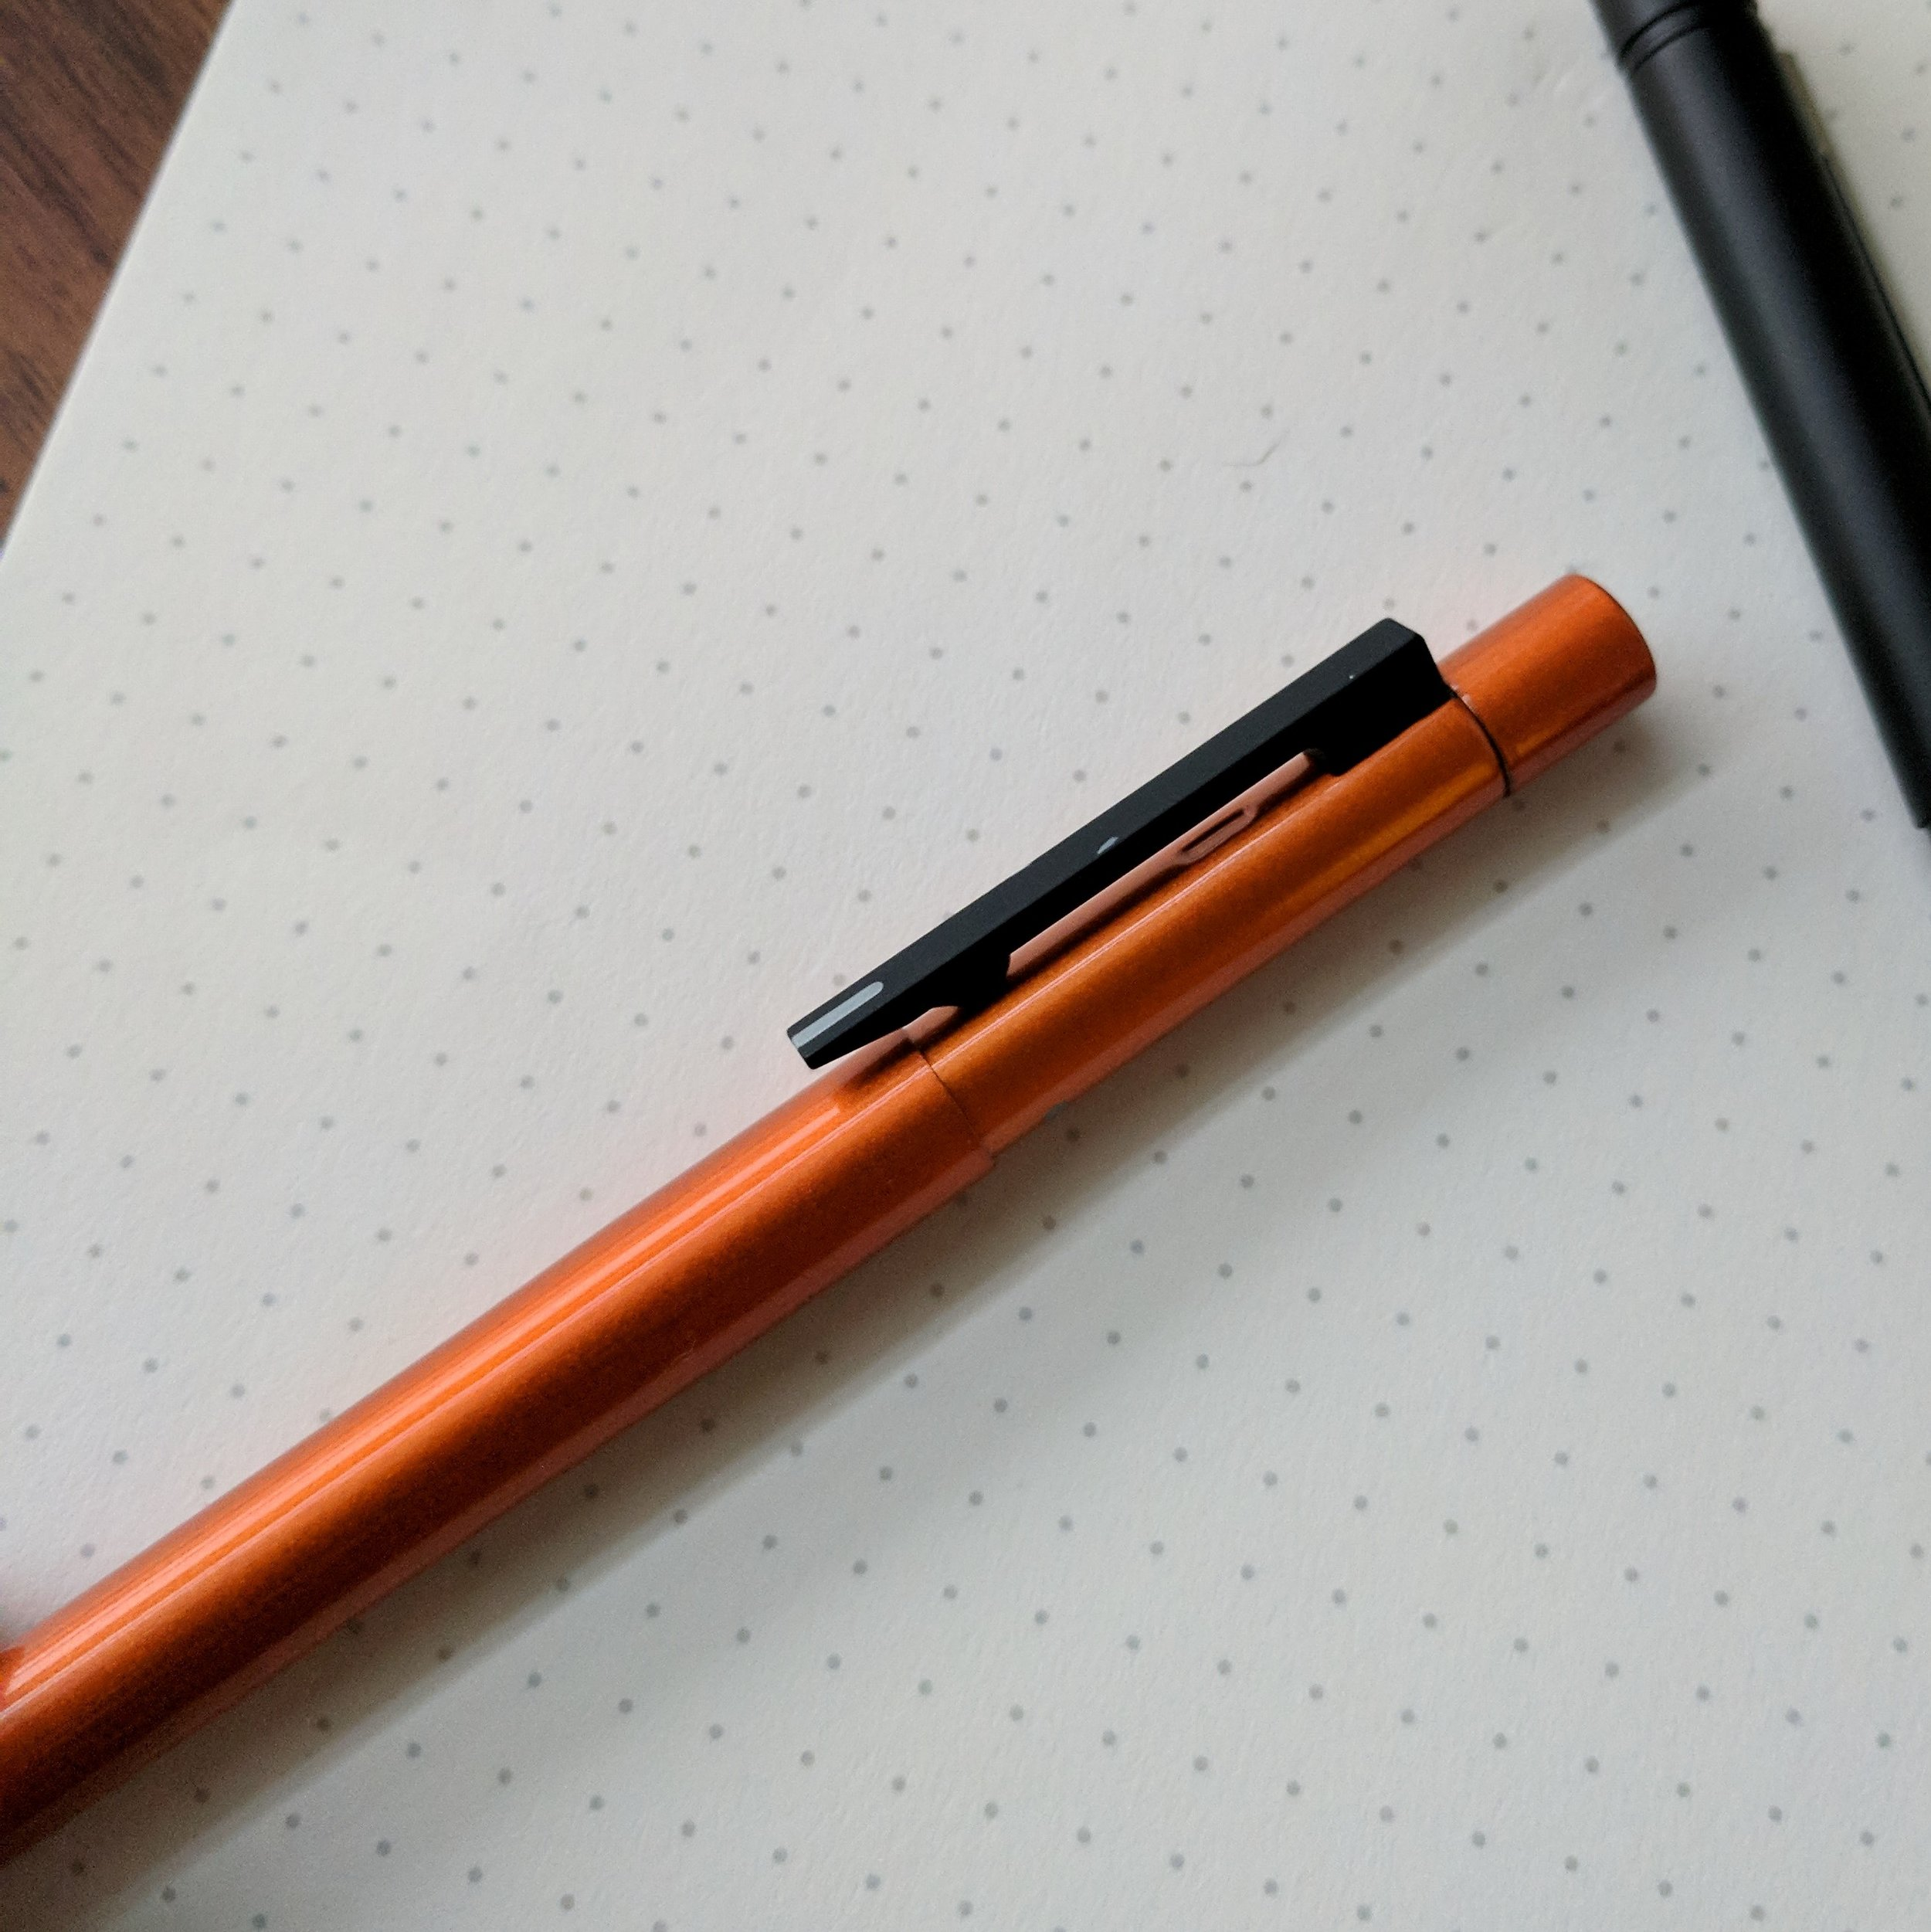 One drawback - the coating on the matte black clip tends to scratch, so I'll have to ding Tombow a little for that. Still, it's held up pretty well, considering how hard I've used this, slinging it around in bags and pockets.